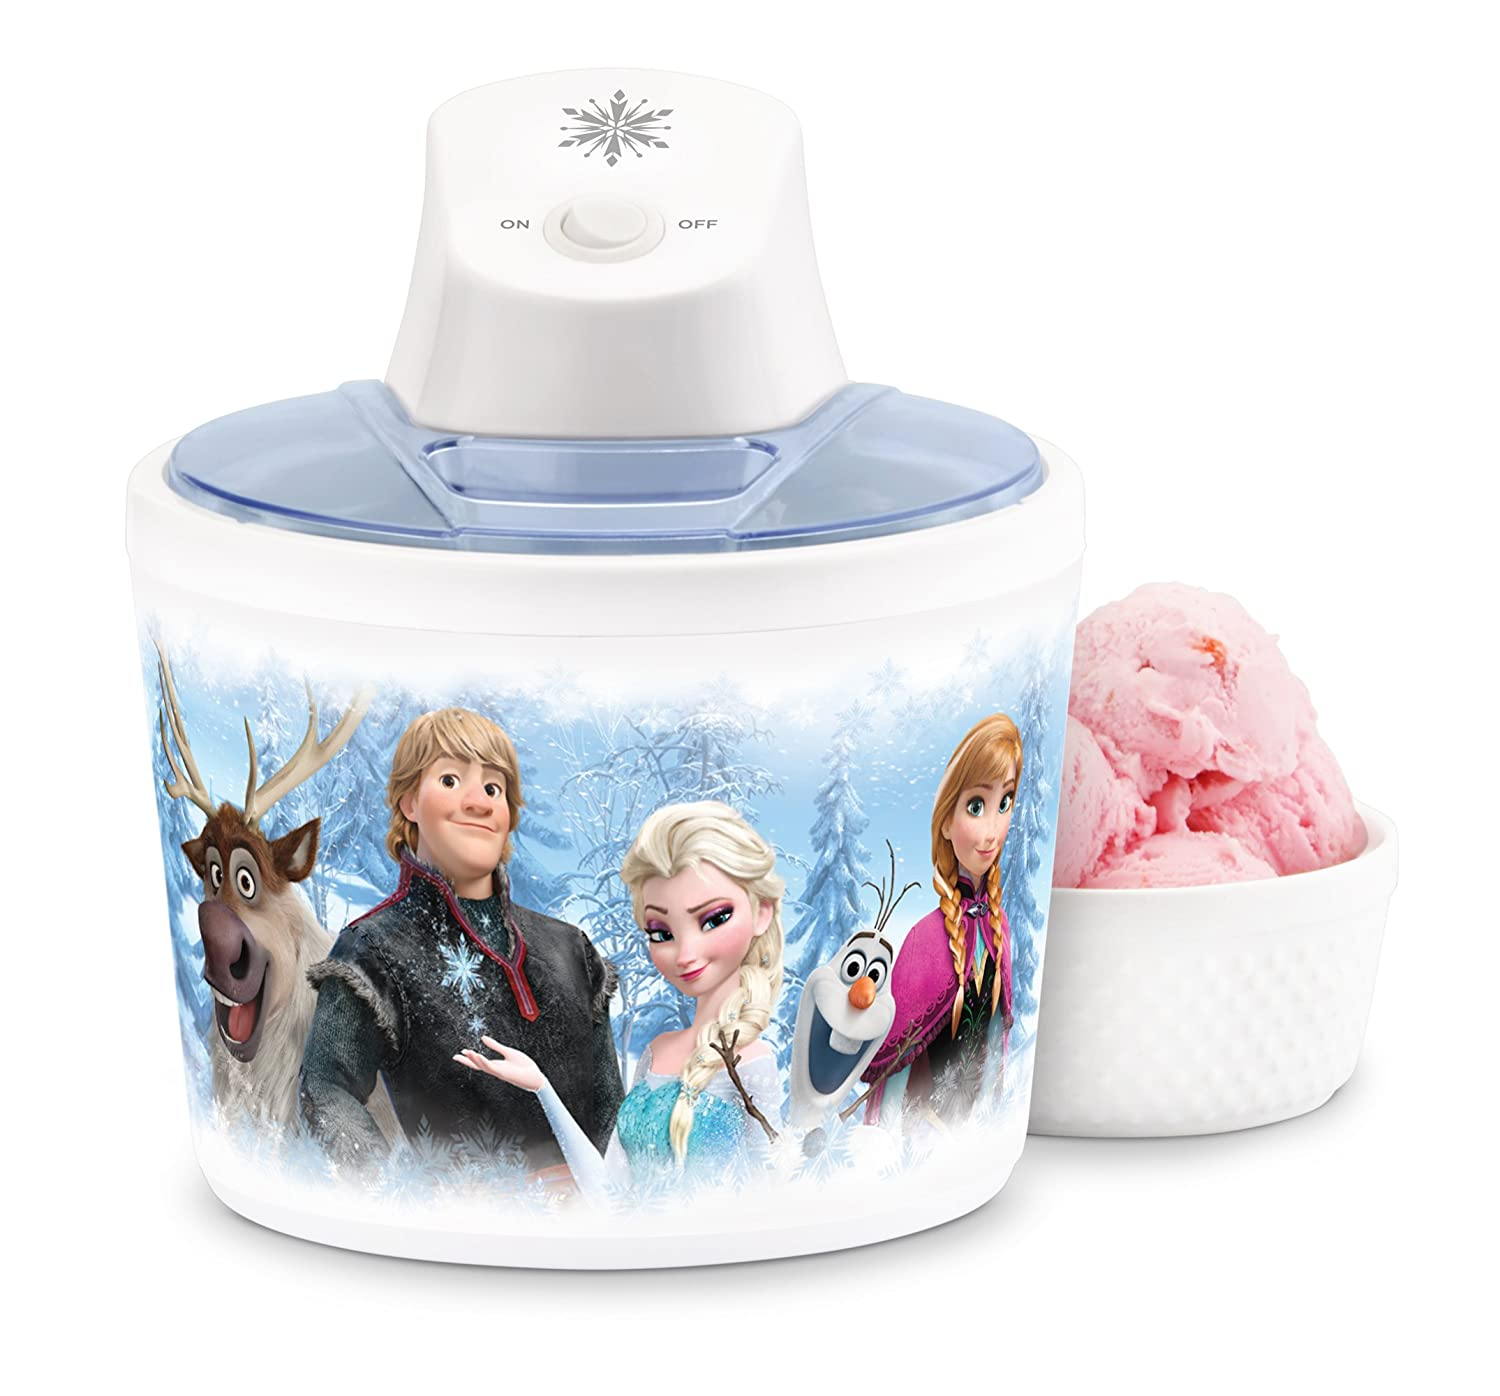 Disney Frozen Ice Cream Maker.